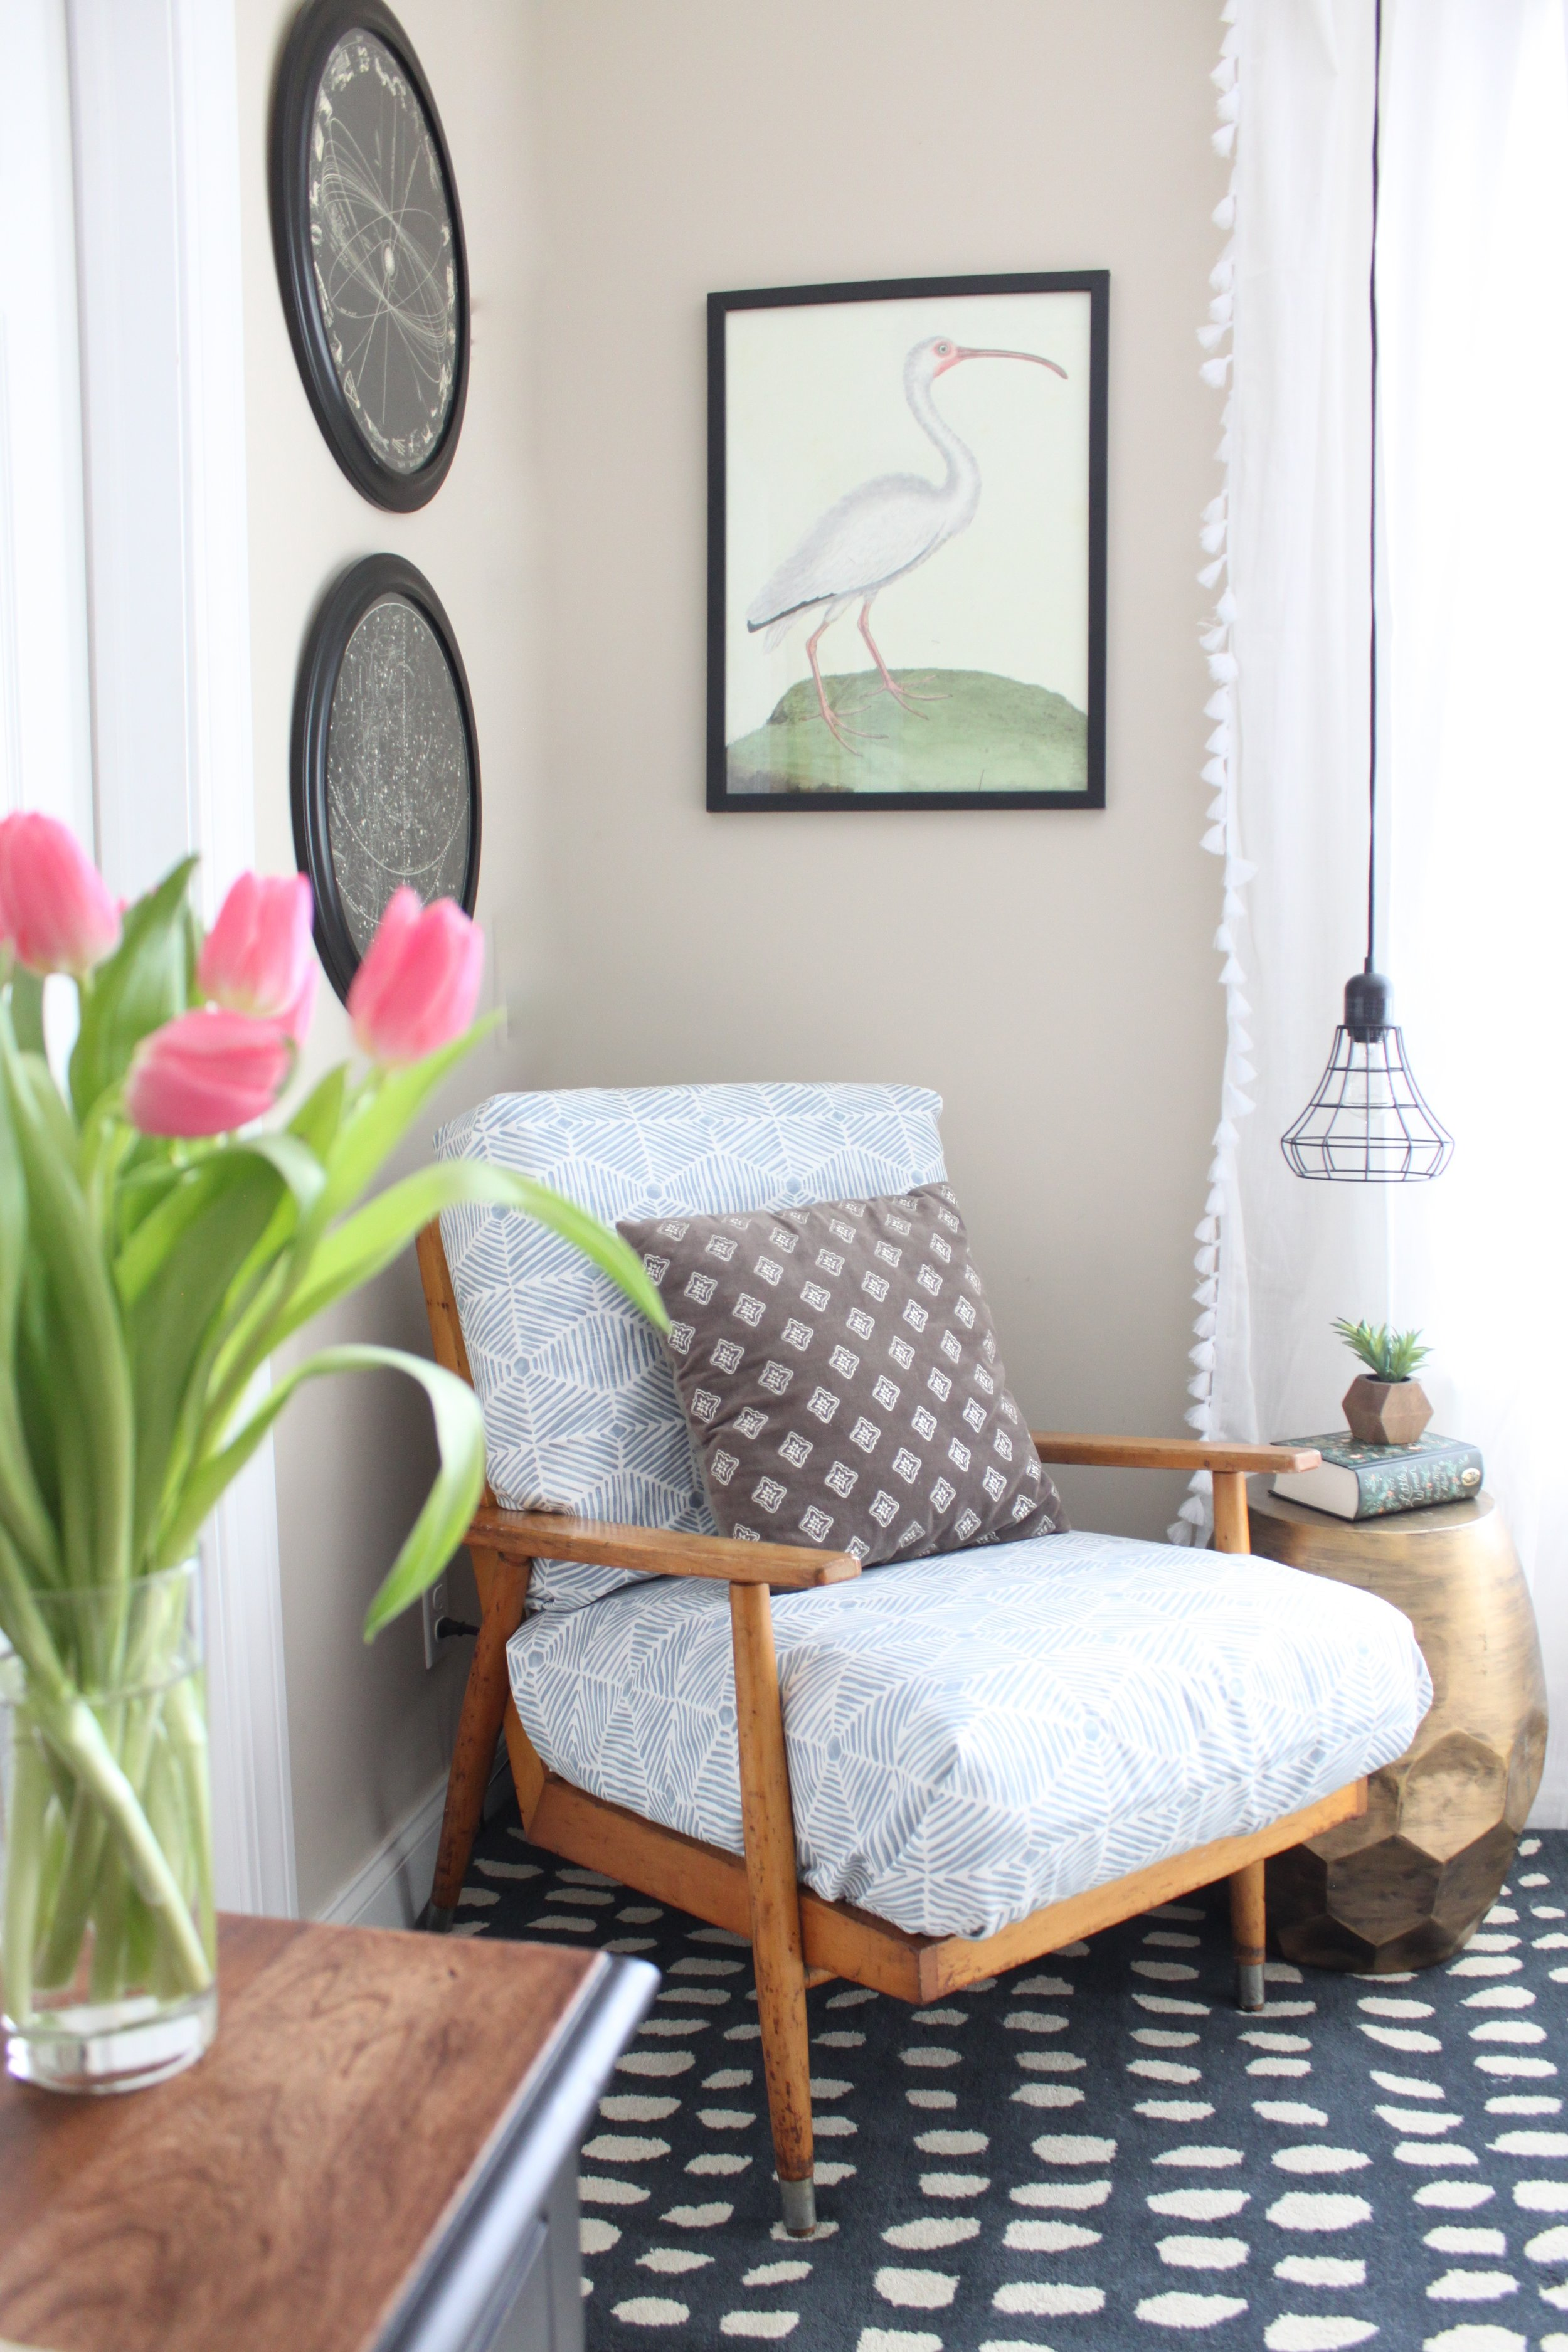 Office corner with reading chair, hanging lamp, and fresh flowers